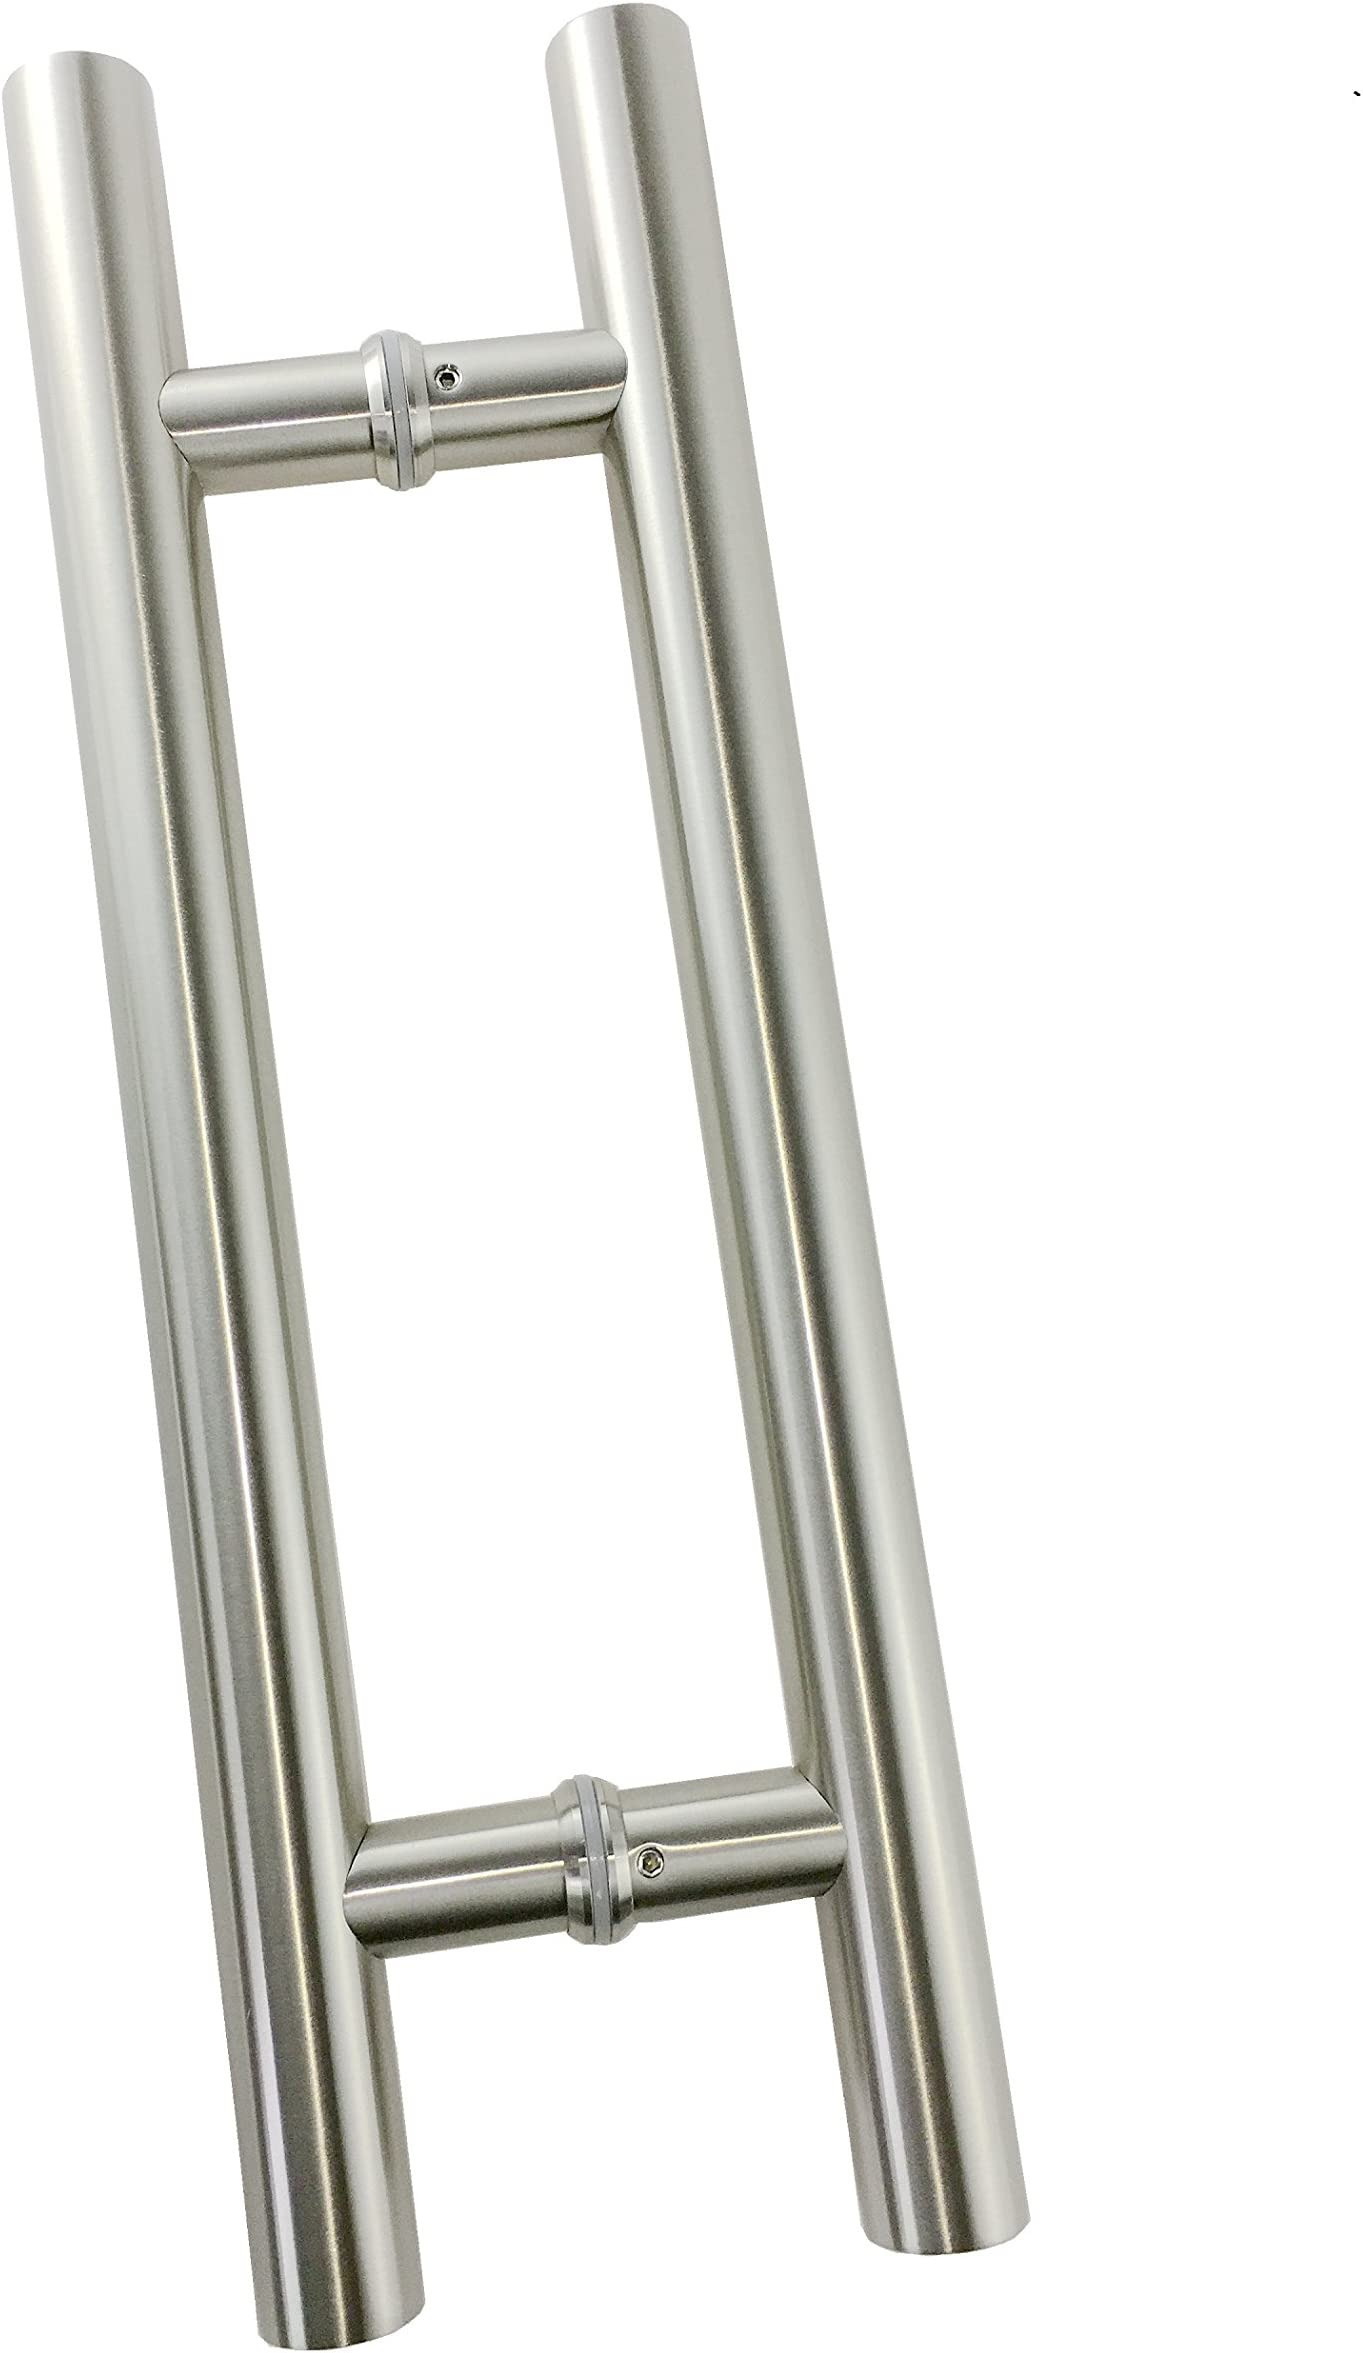 "VRSS 304 Stainless Steel Commercial H-Shape/ Ladder Style Back to Back Push Pull Door Handle (17.7"" Length/1.26"" Diamter)"